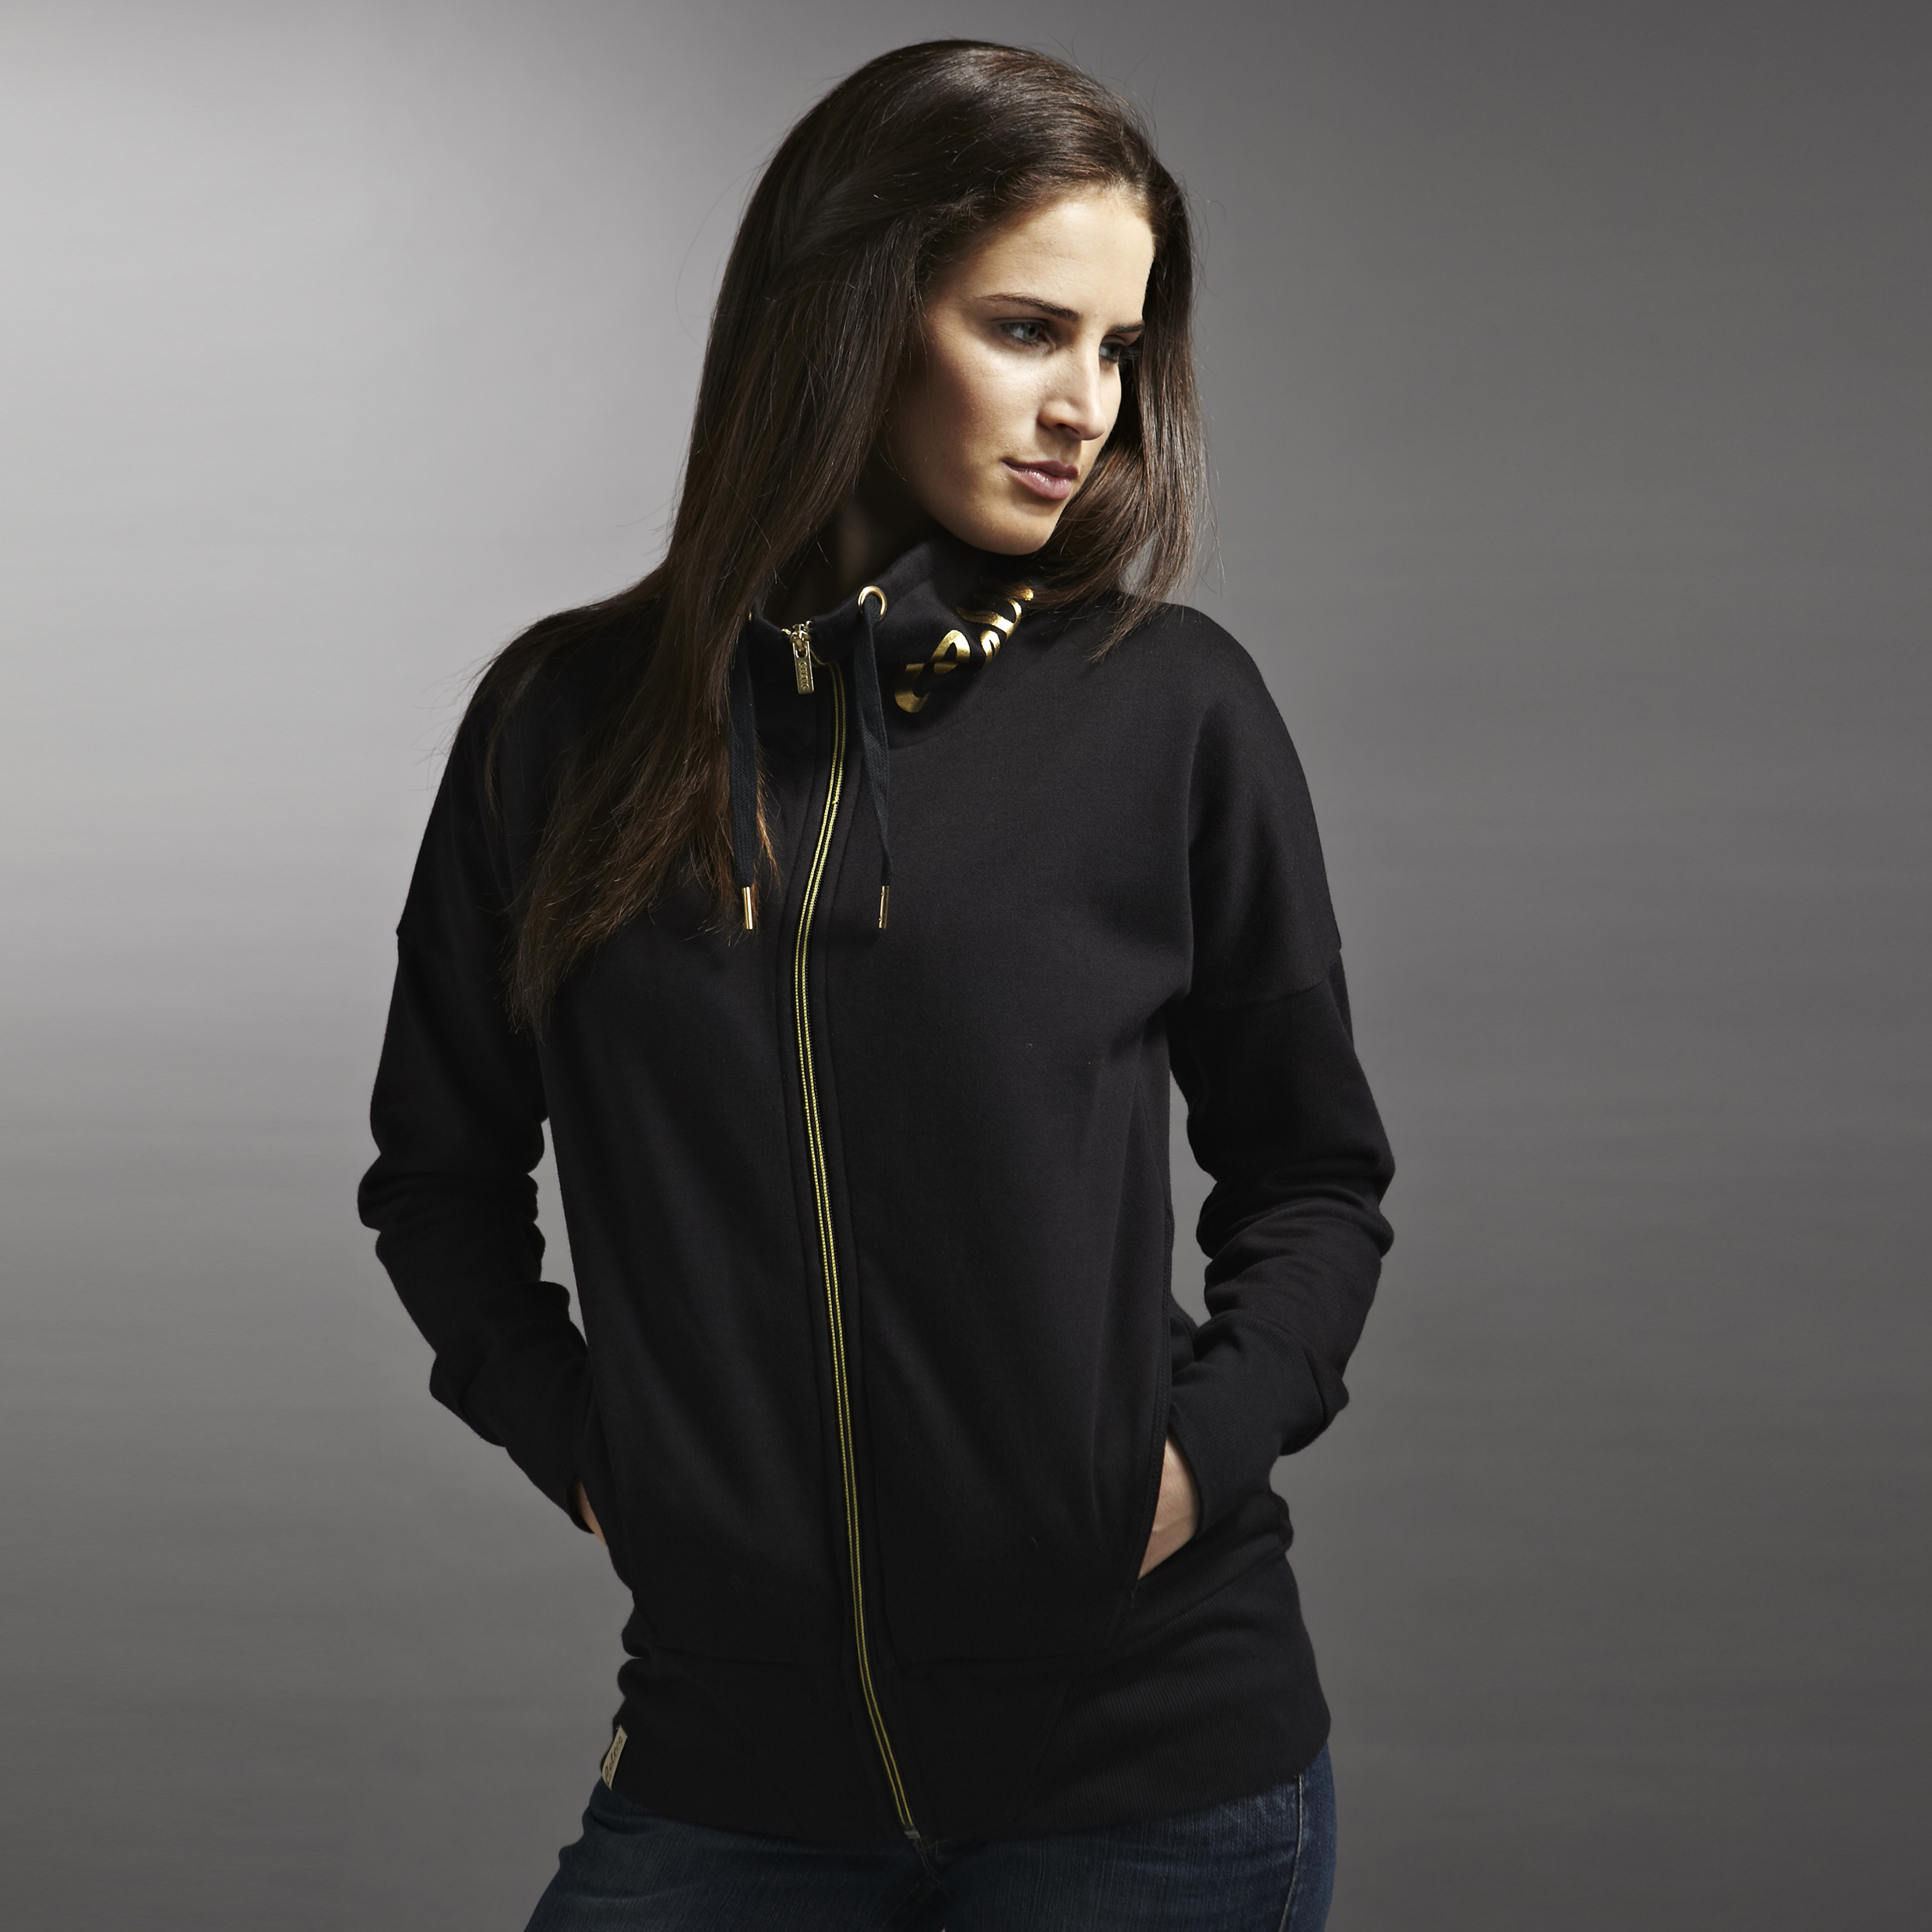 Celtic Funnel Neck Zip Thru Sweatshirt - Black - Womens